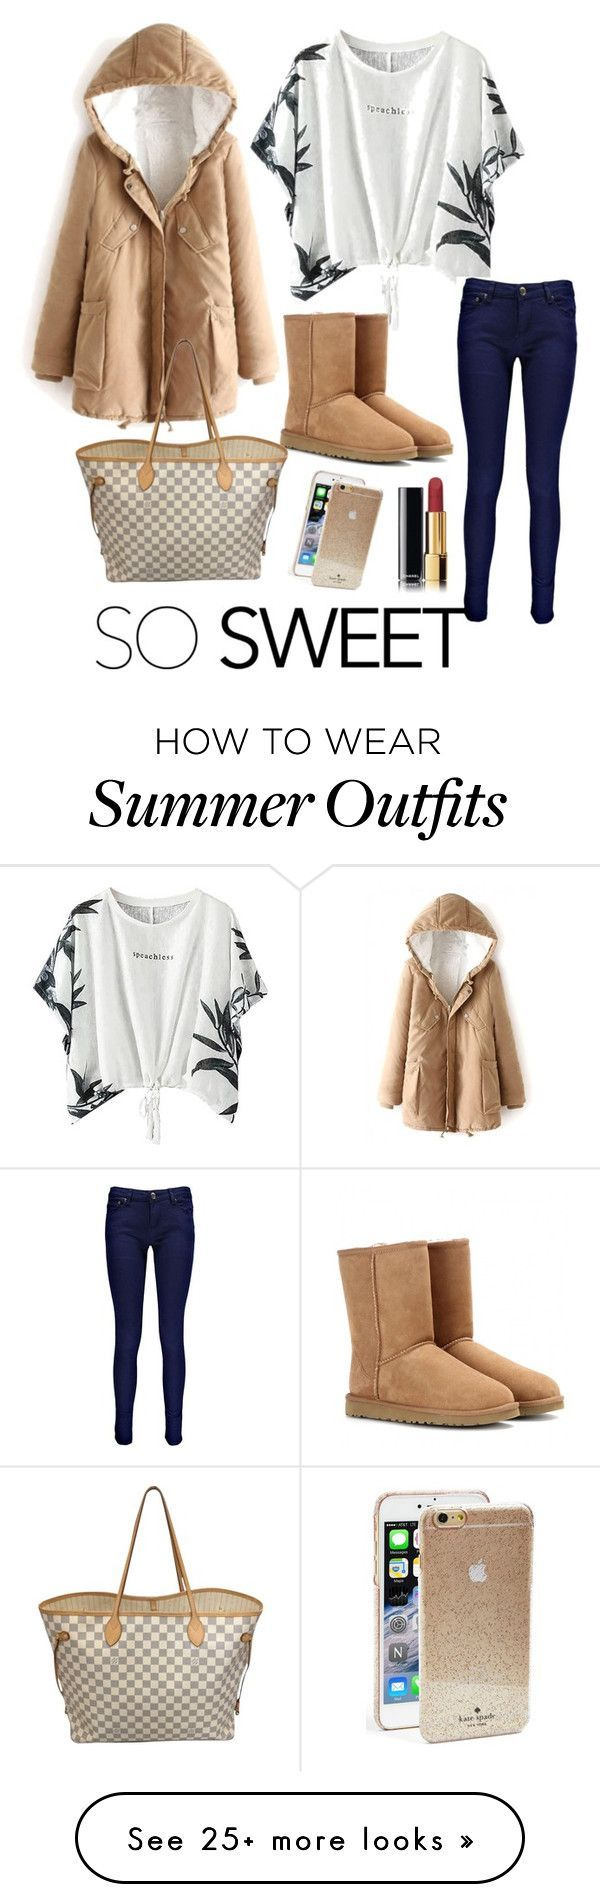 """""""Outfit / SO SWEET / Winter"""" by marianamendza on Polyvore featuring moda, Boohoo, Kate Spade, UGG Australia, Louis Vuitton i Chanel"""